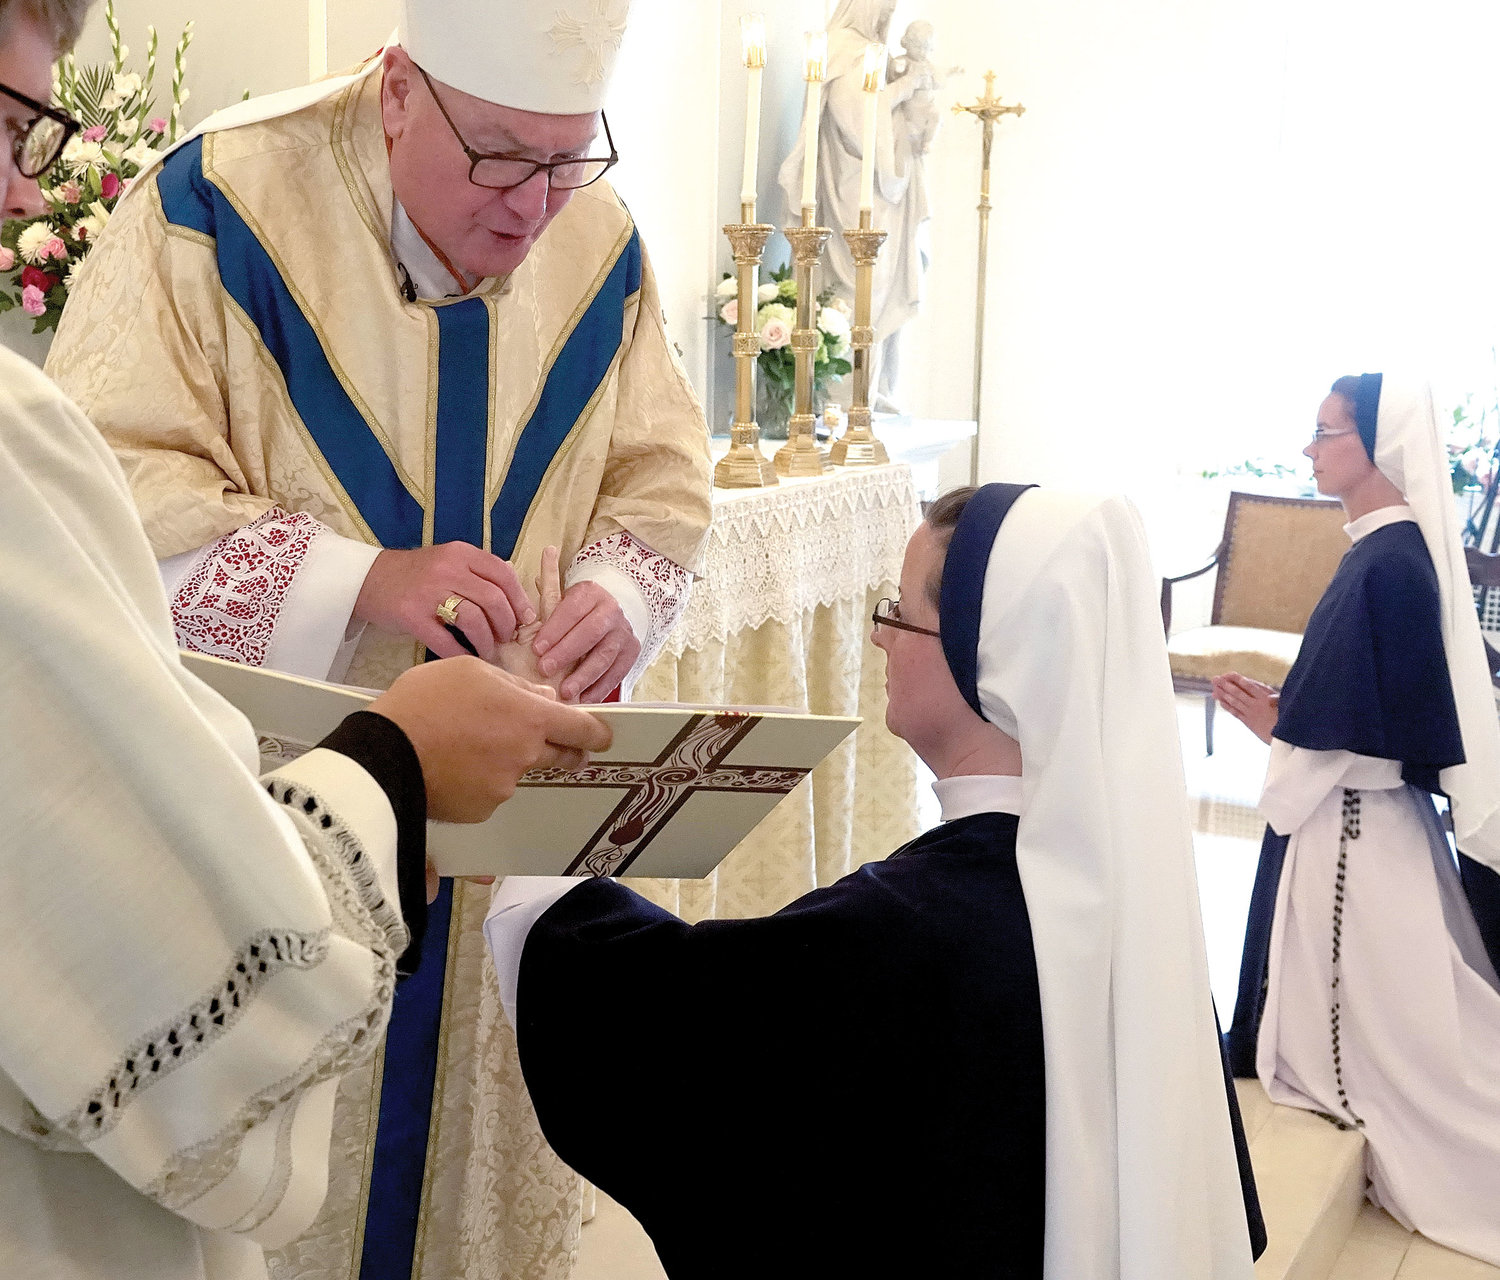 Sister Virginia Joy, S.V., receives her ring from Cardinal Dolan, who served as principal celebrant of the Mass of Perpetual Profession.